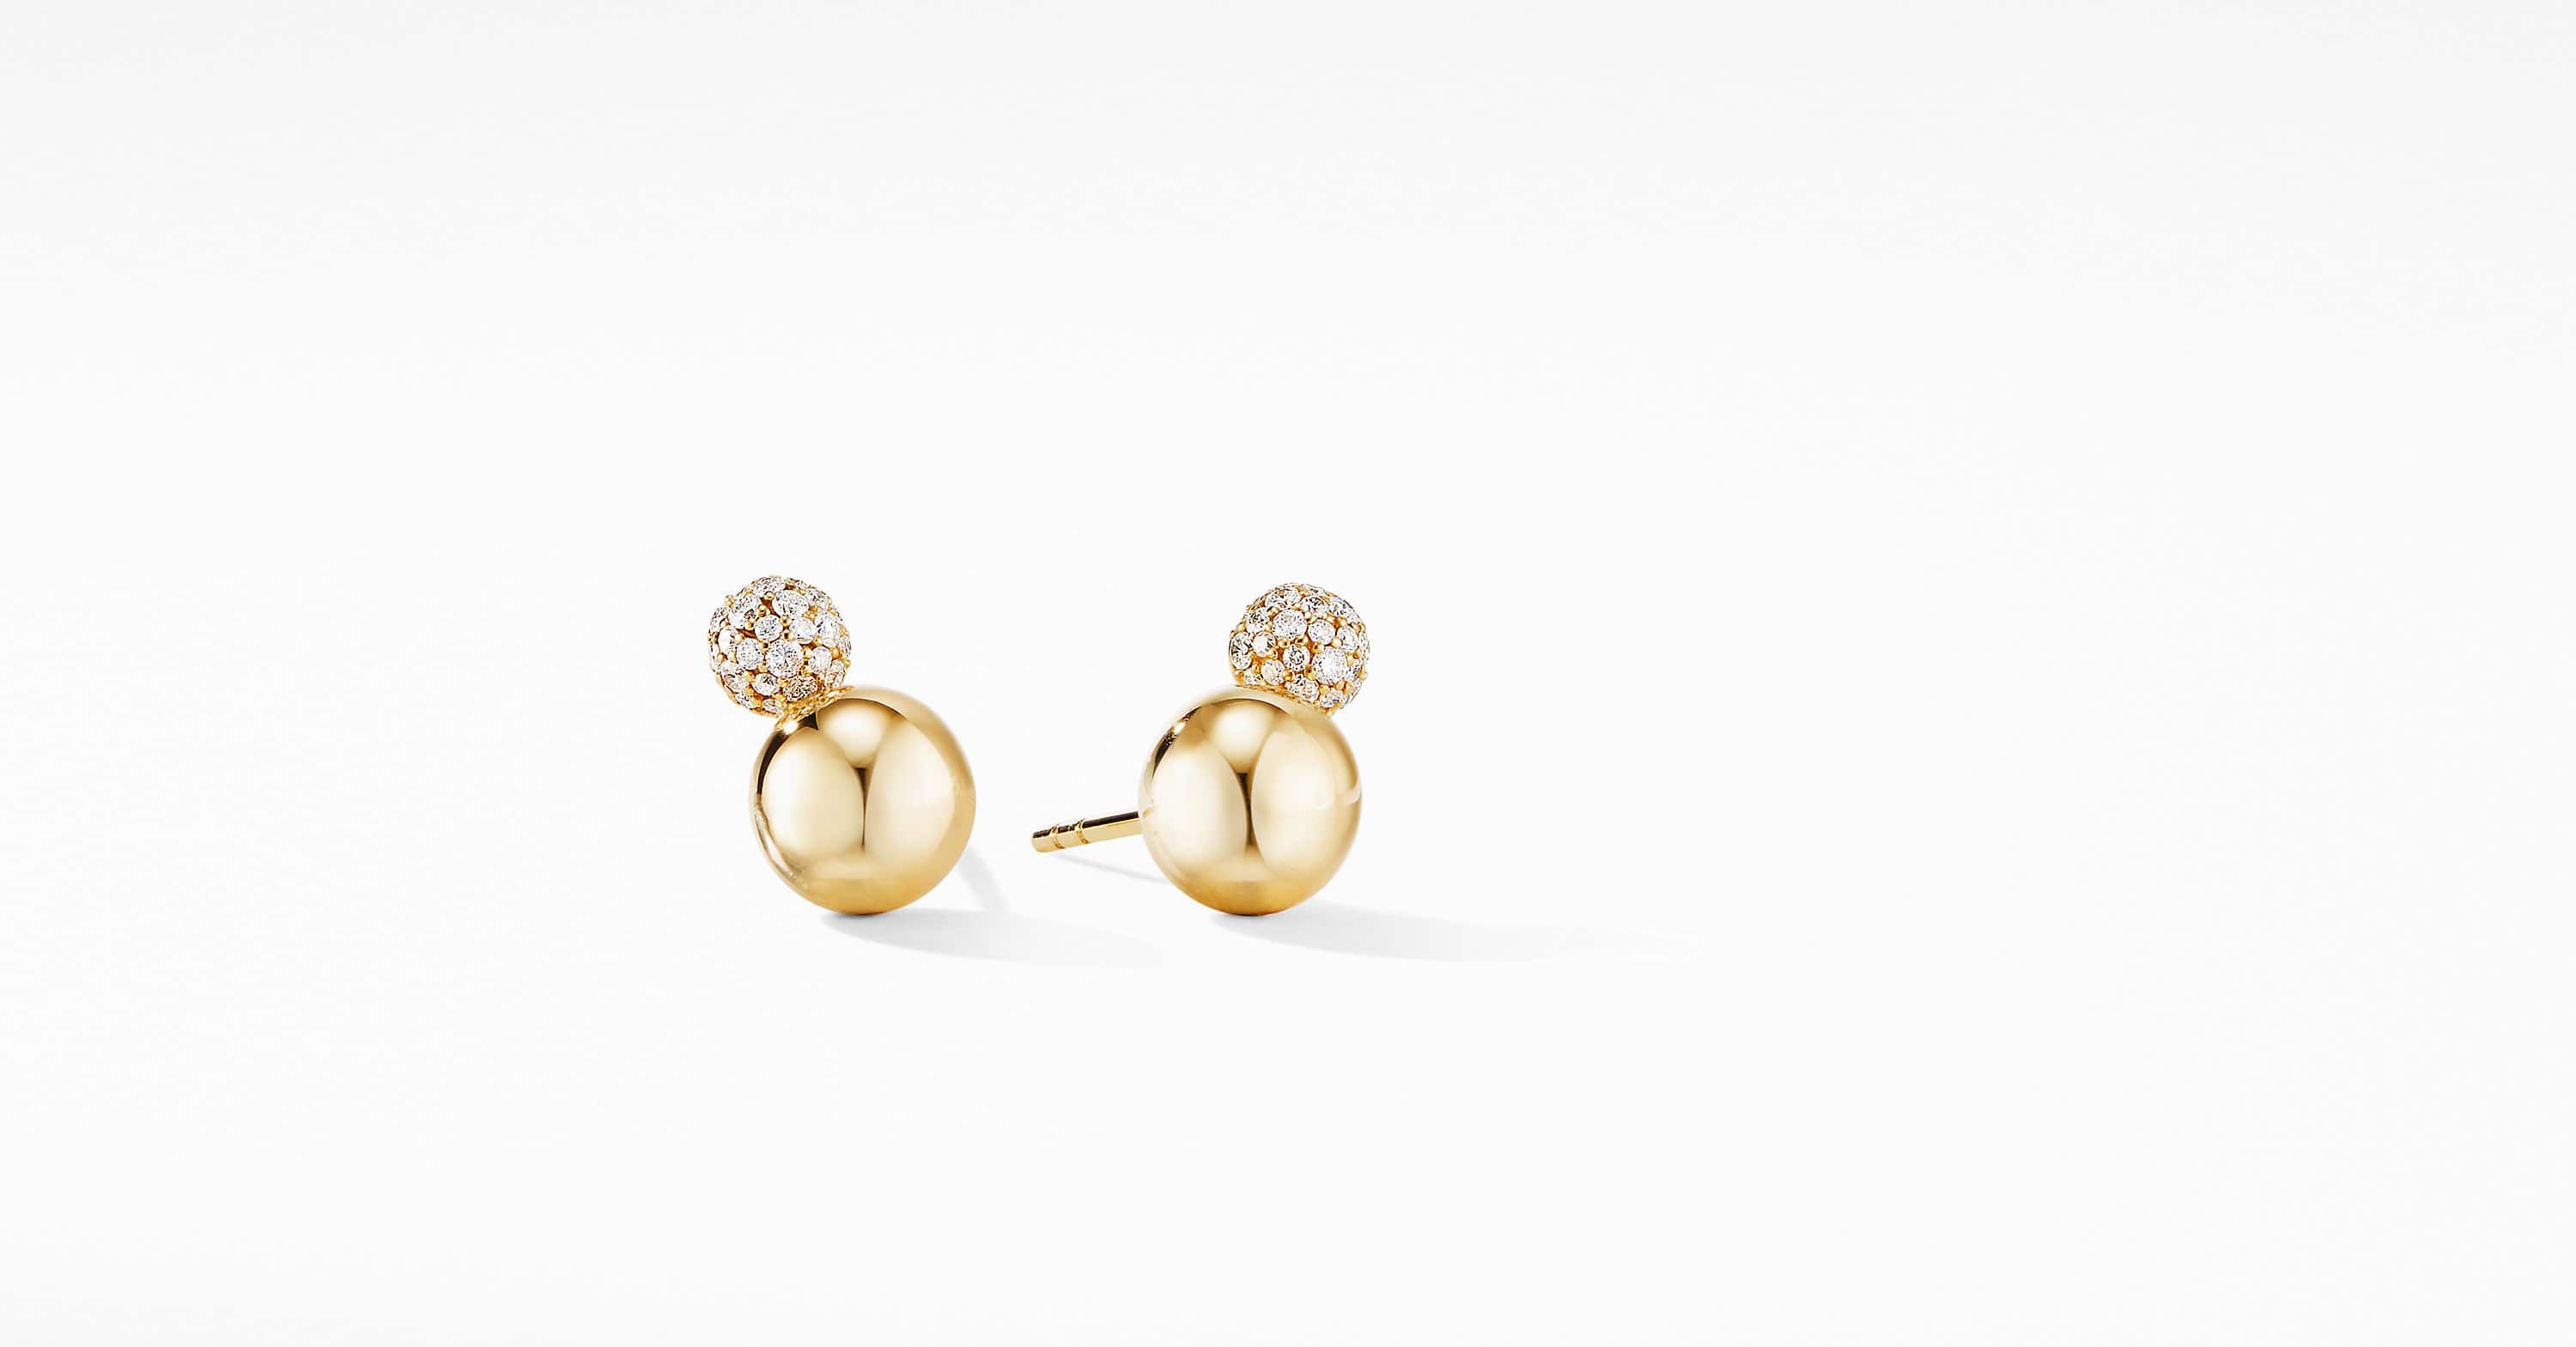 Solari Stud Earrings in 18K Yellow Gold with Diamonds